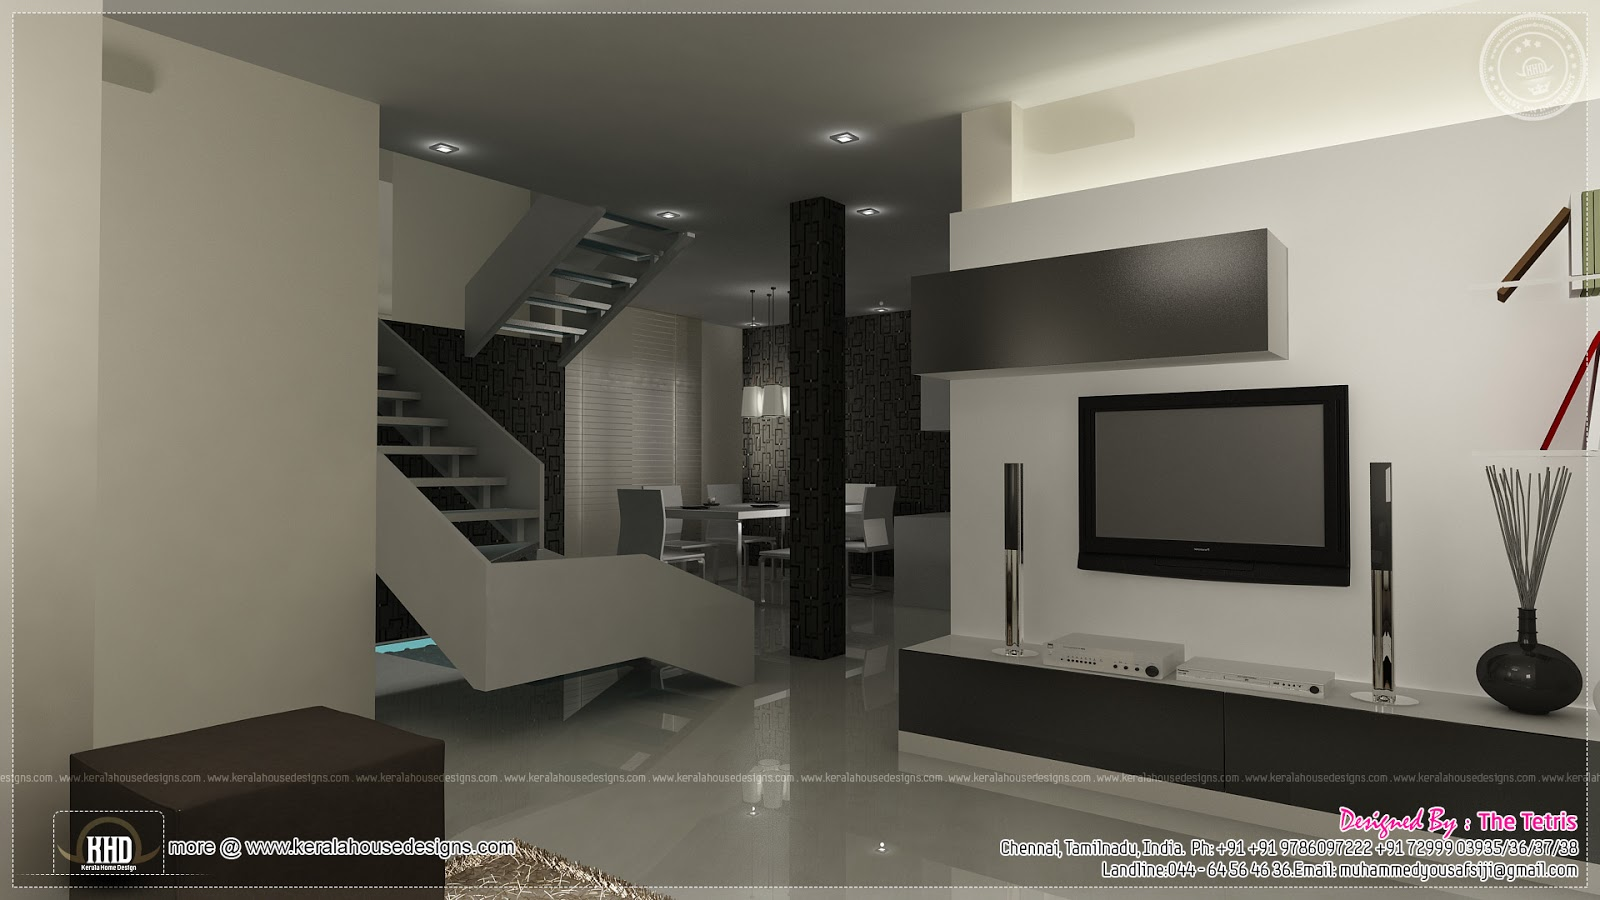 Interior design renderings by tetris architects chennai kerala home design and floor plans - House interior designs ...